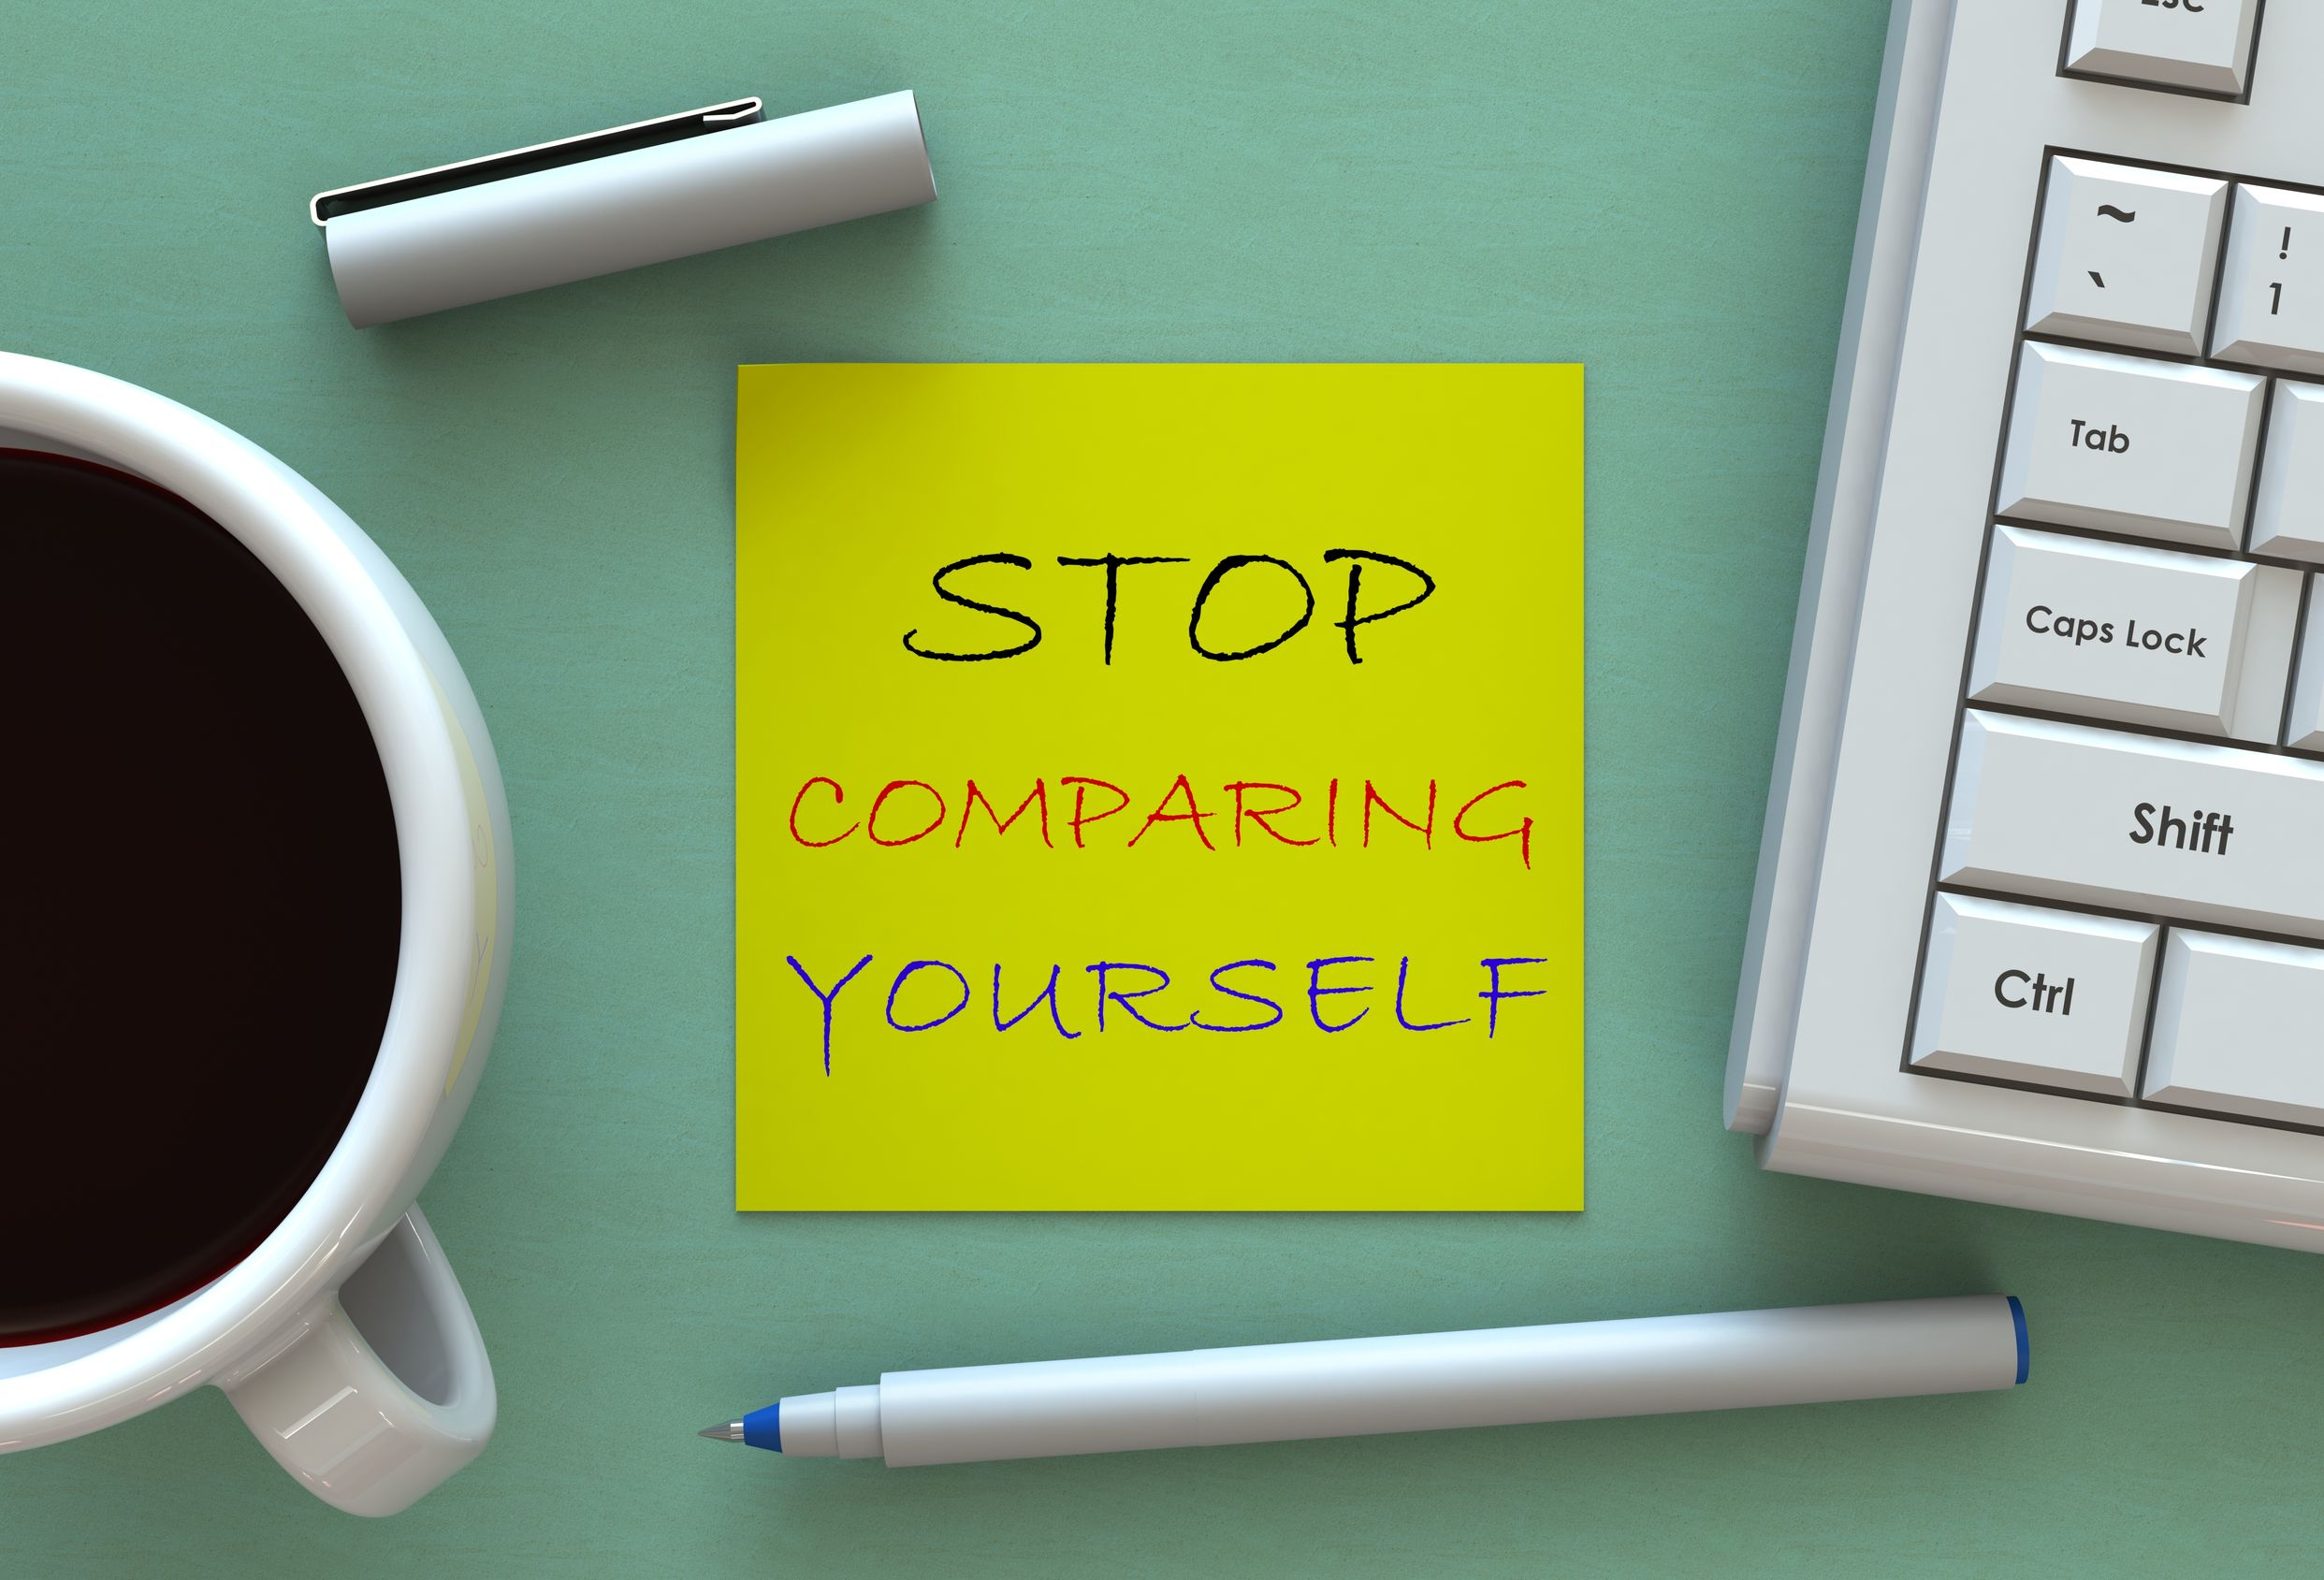 Your must stop comparing yourself to others to be fearless.